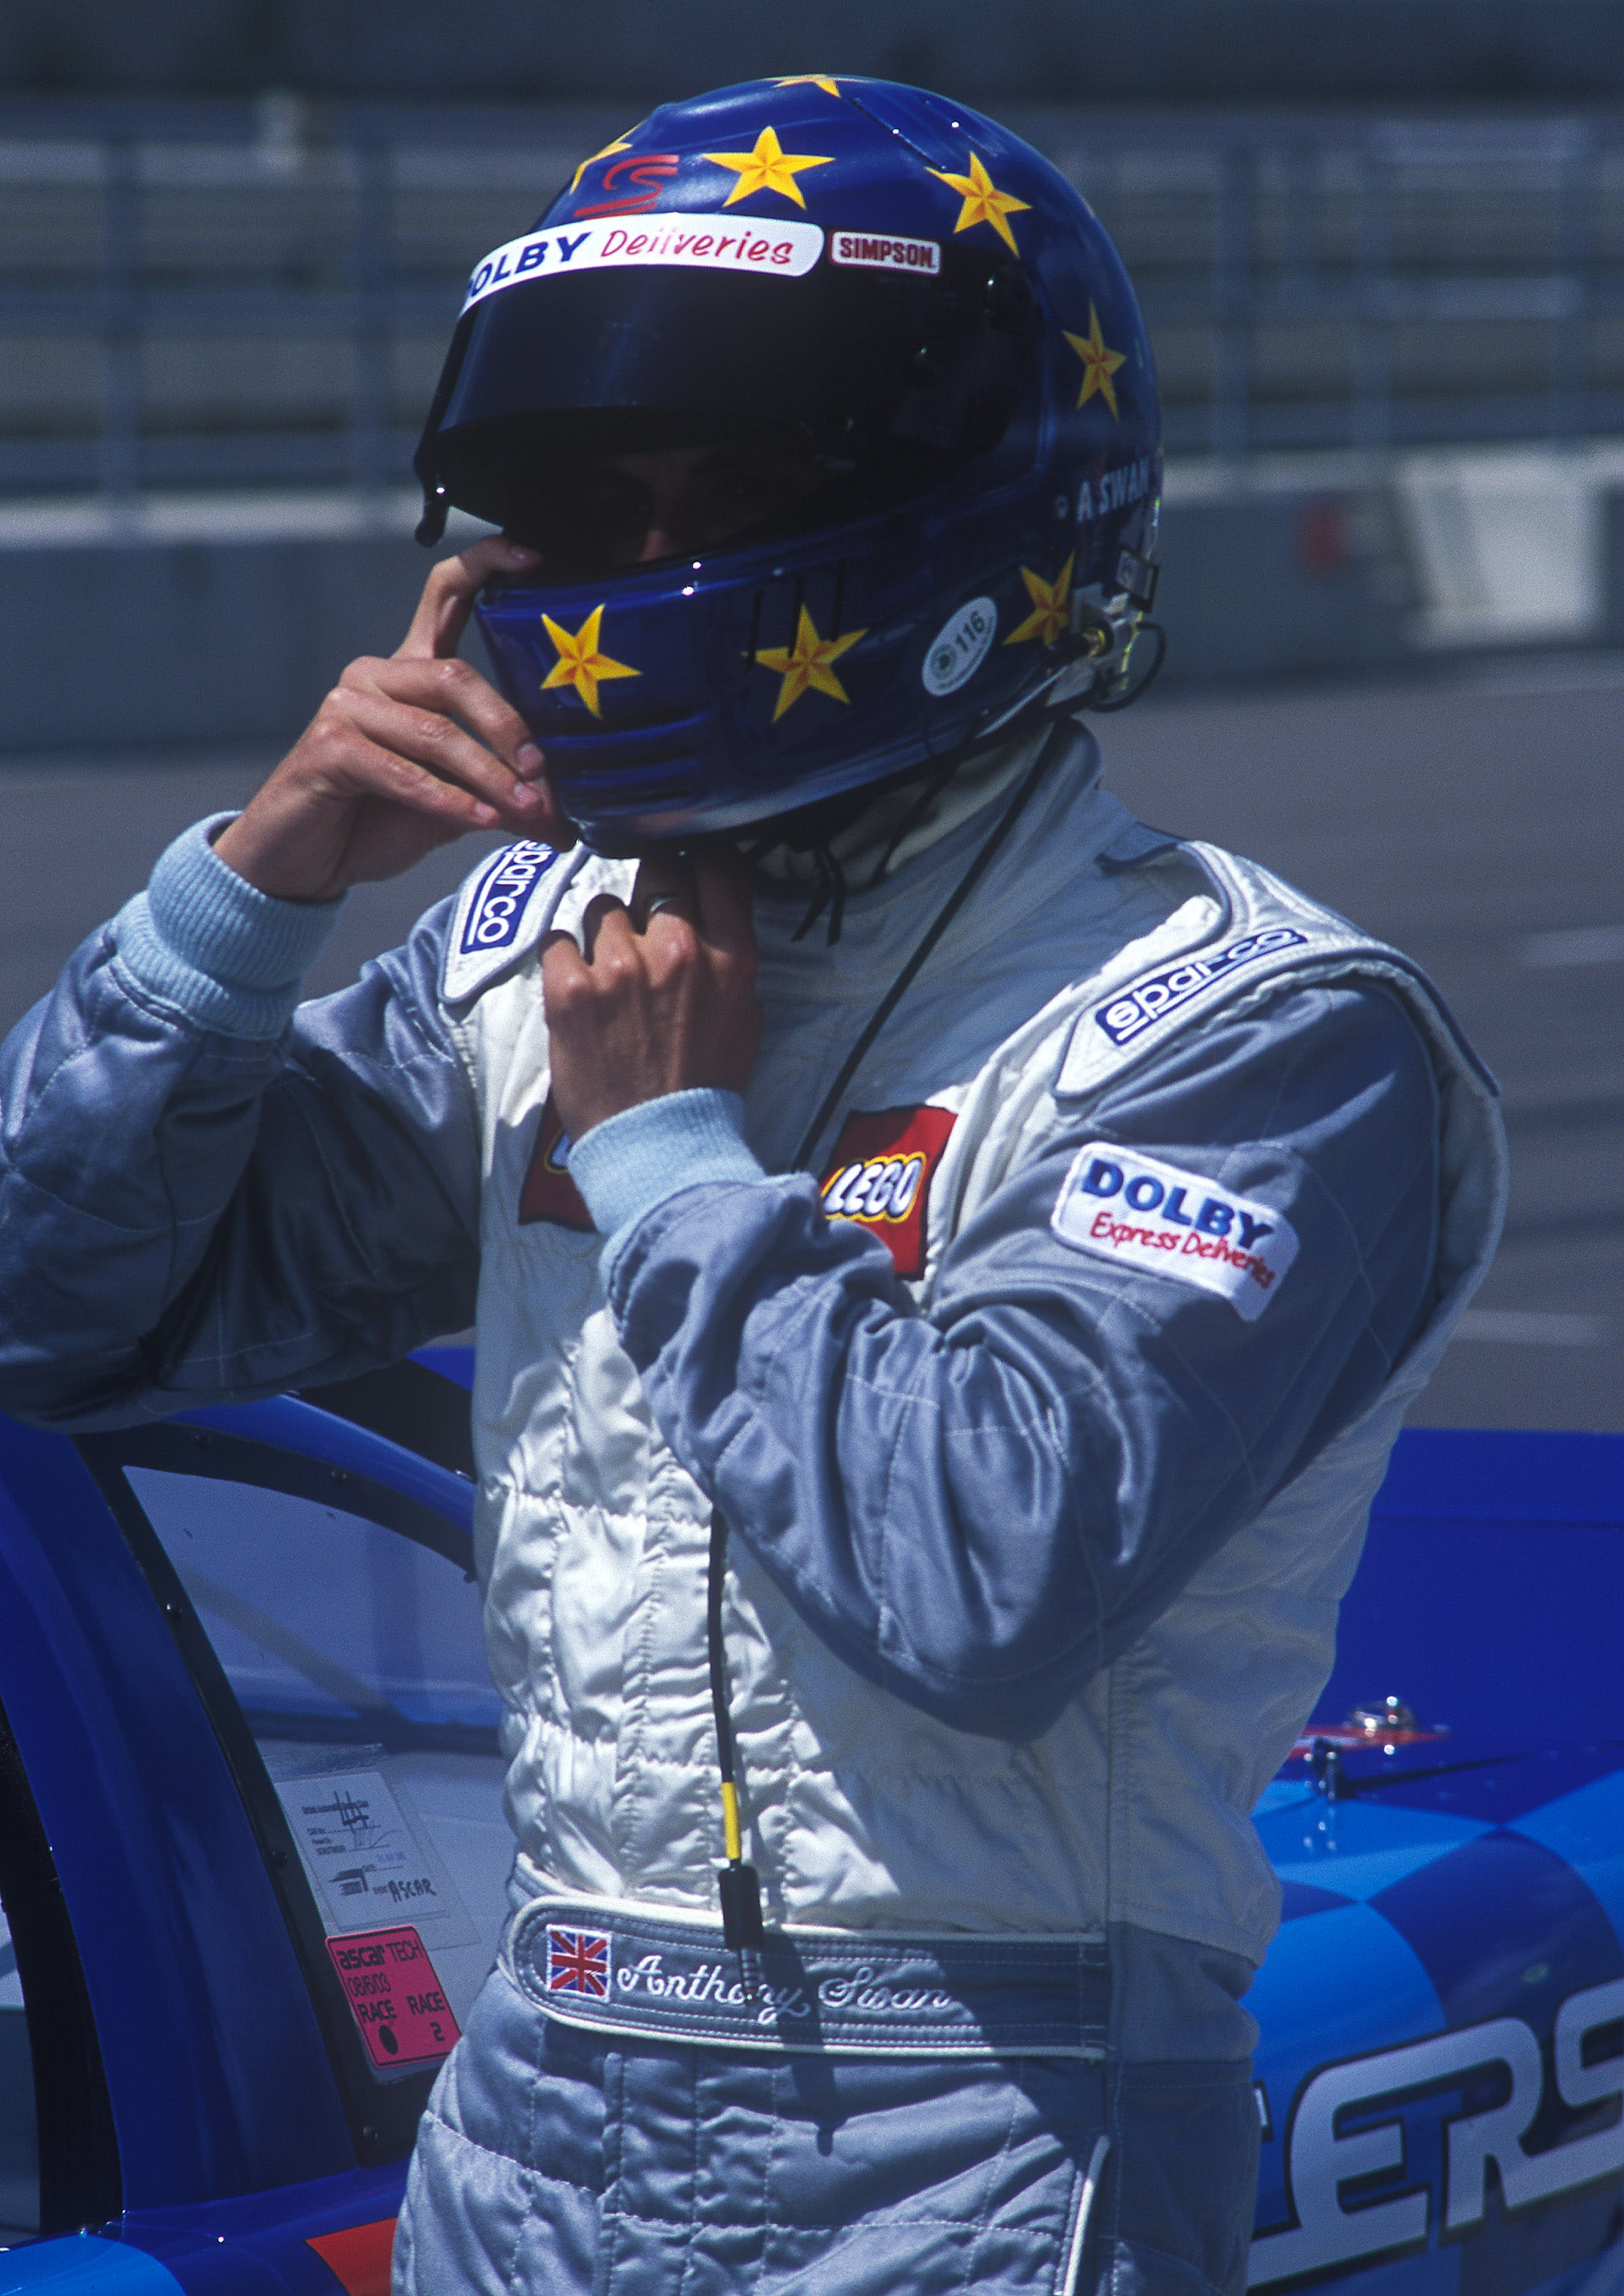 Man in Blue and and White Racer Suit Wearing His Blue and Yellow Star Full Face Helmet